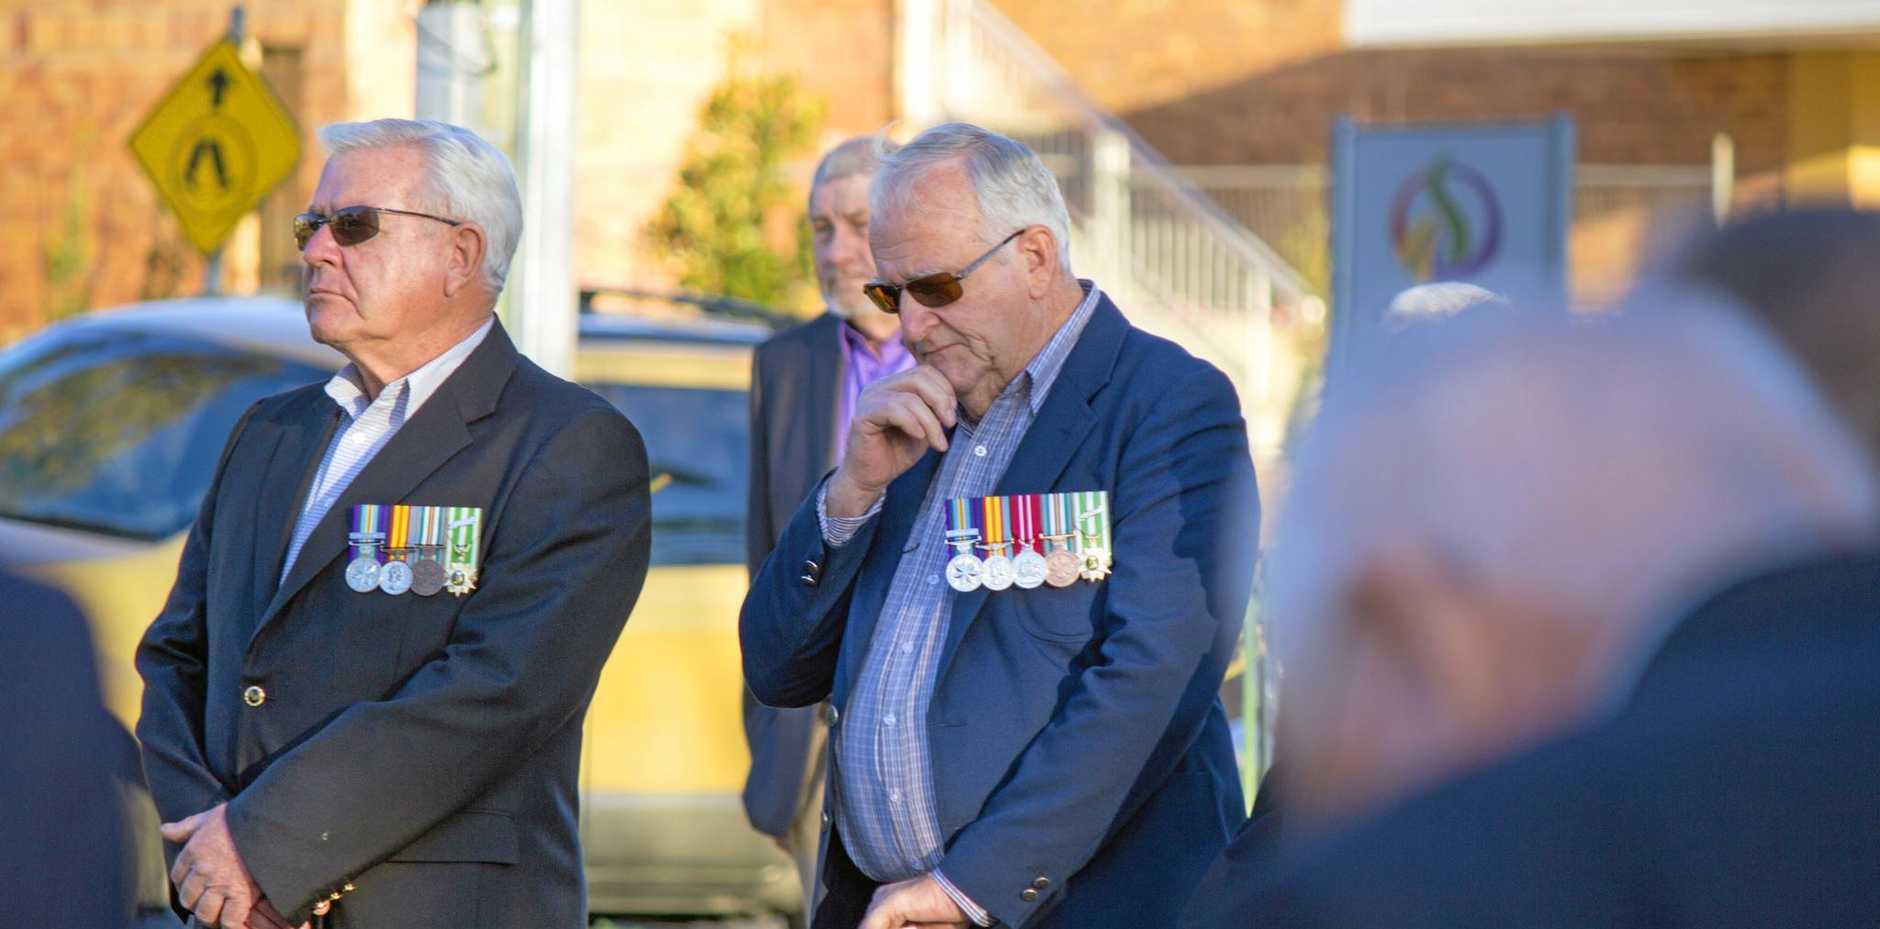 EMOTIONAL: Stanthorpe commemorated the Battle of Long Tan on Thursday, which marked 50 years since the battle.